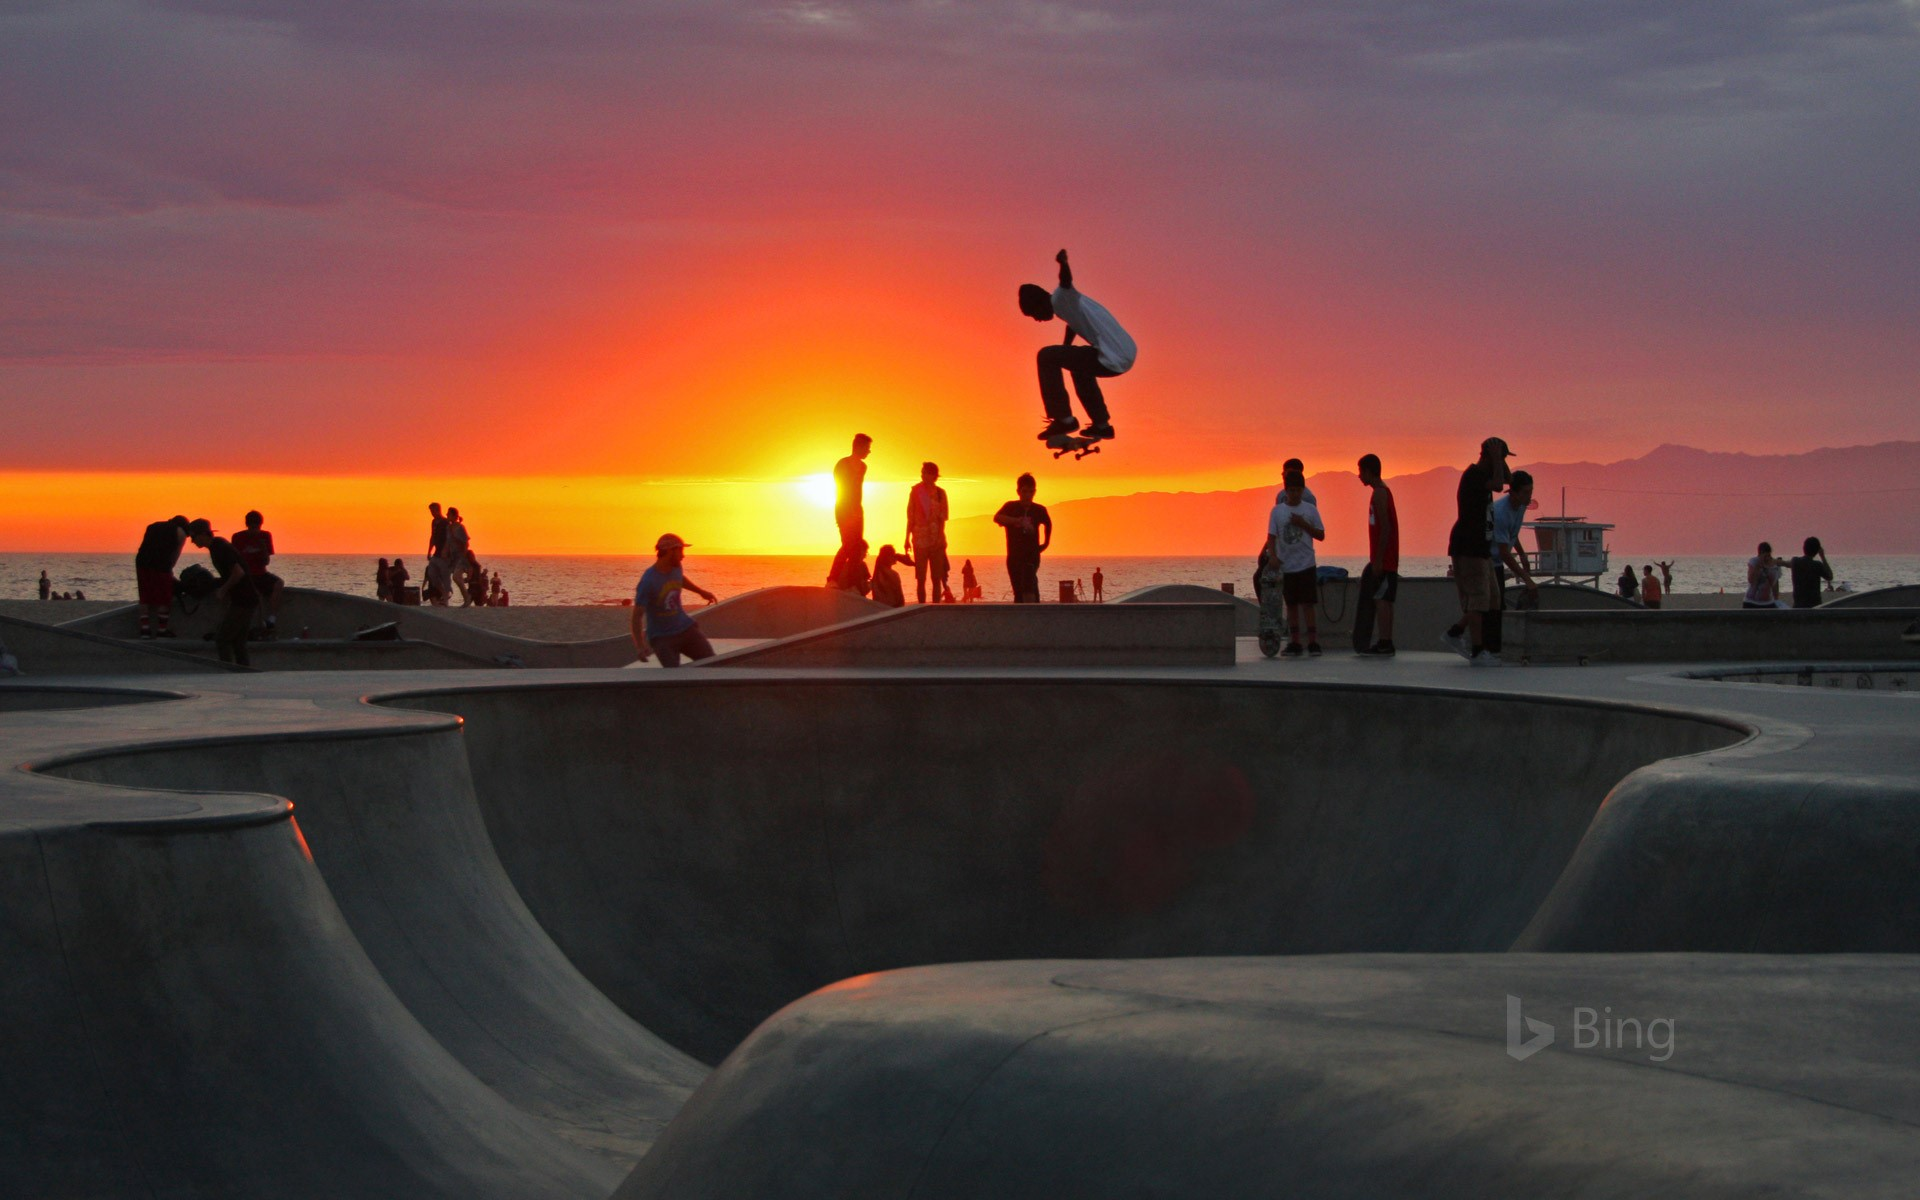 Skateboarding at Venice Beach California mgsMomentGetty 1920x1200